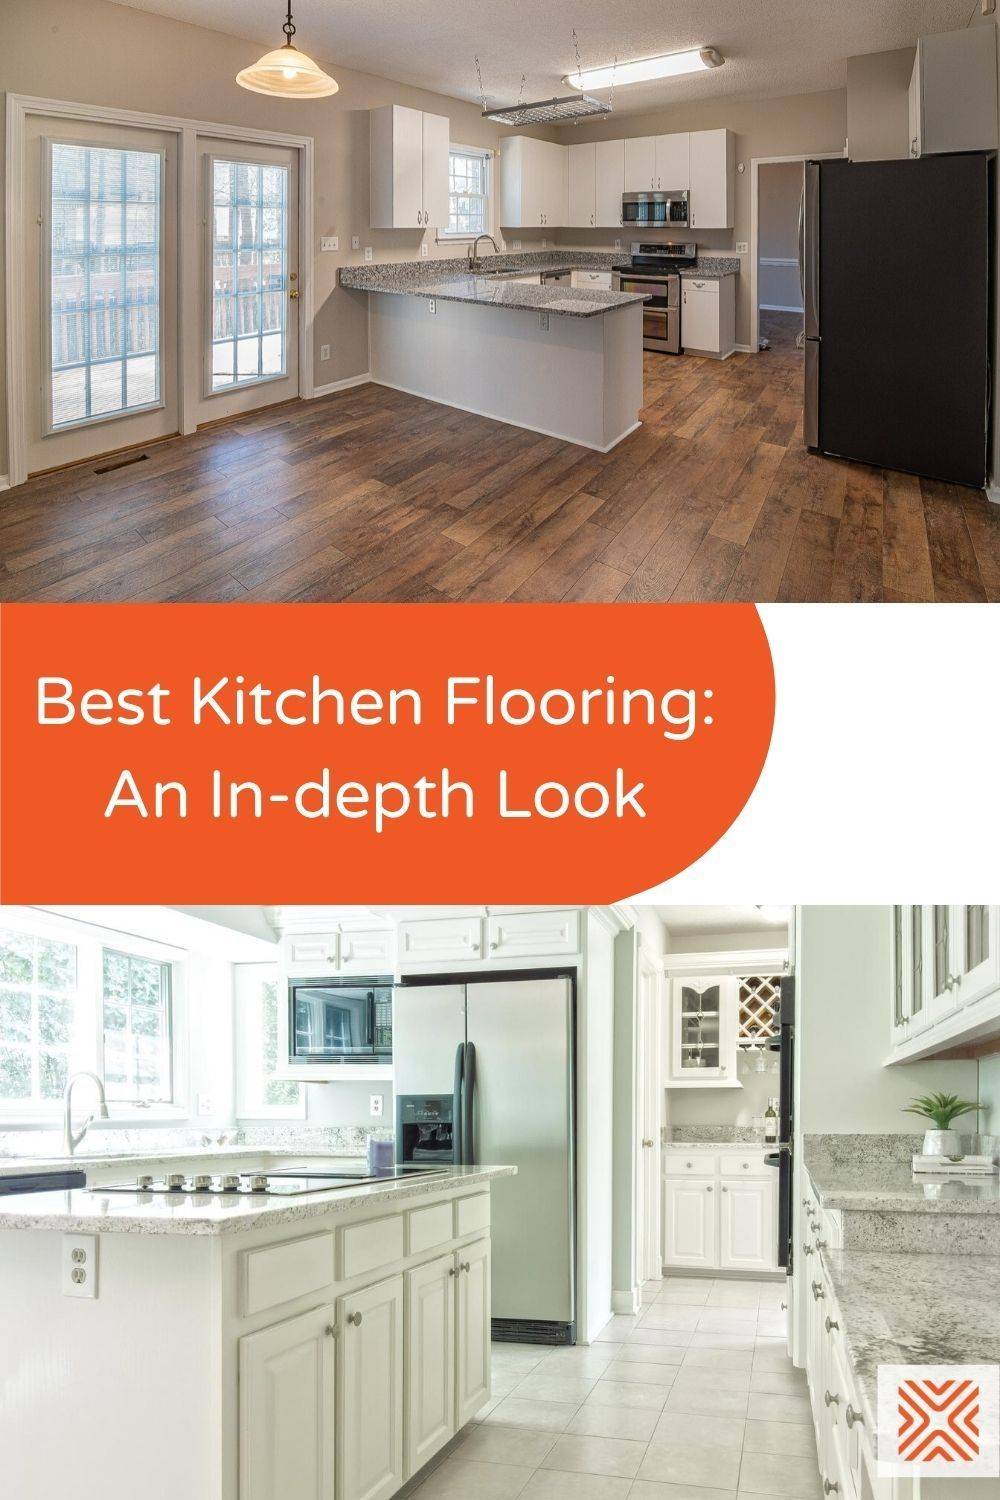 Options Costs And Features For The Best Flooring For Kitchen In 2020 Kitchen Flooring Best Flooring For Kitchen Kitchen Flooring Options